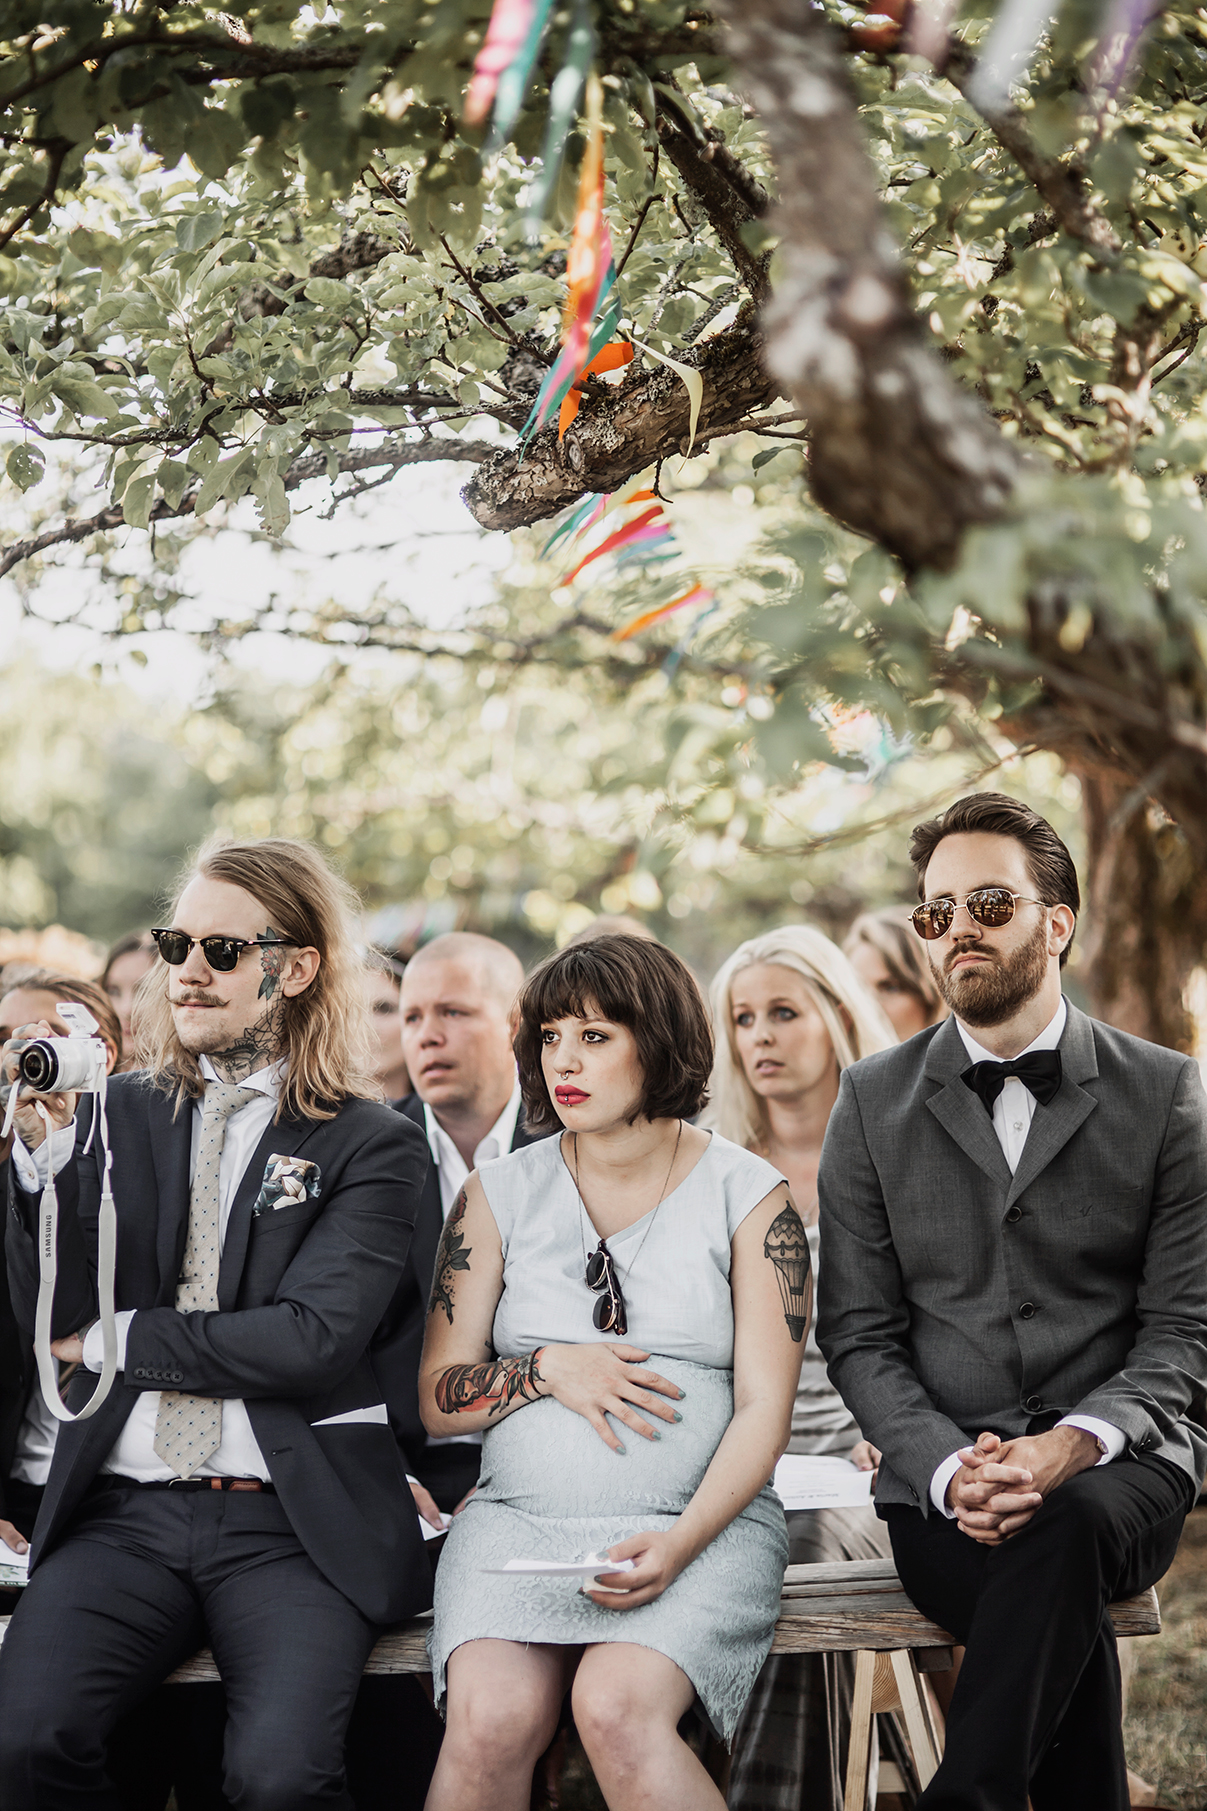 Anton's and Maria's bohemian wedding photo: Anna Malmberg n°80